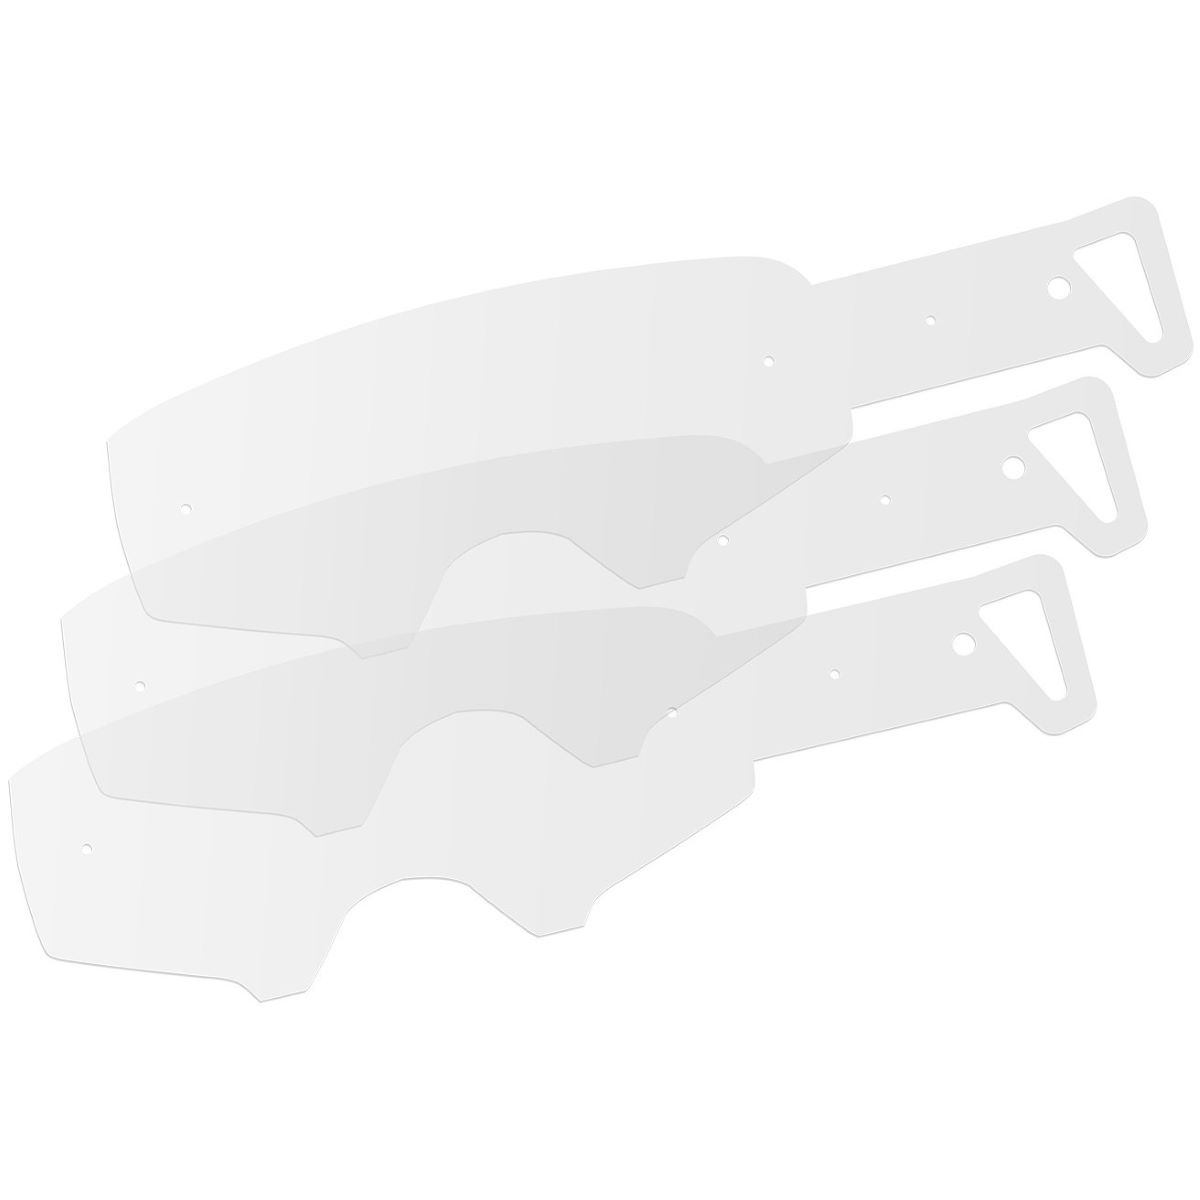 Leatt Tear-Off Standard 50-pack   Cycling Goggles